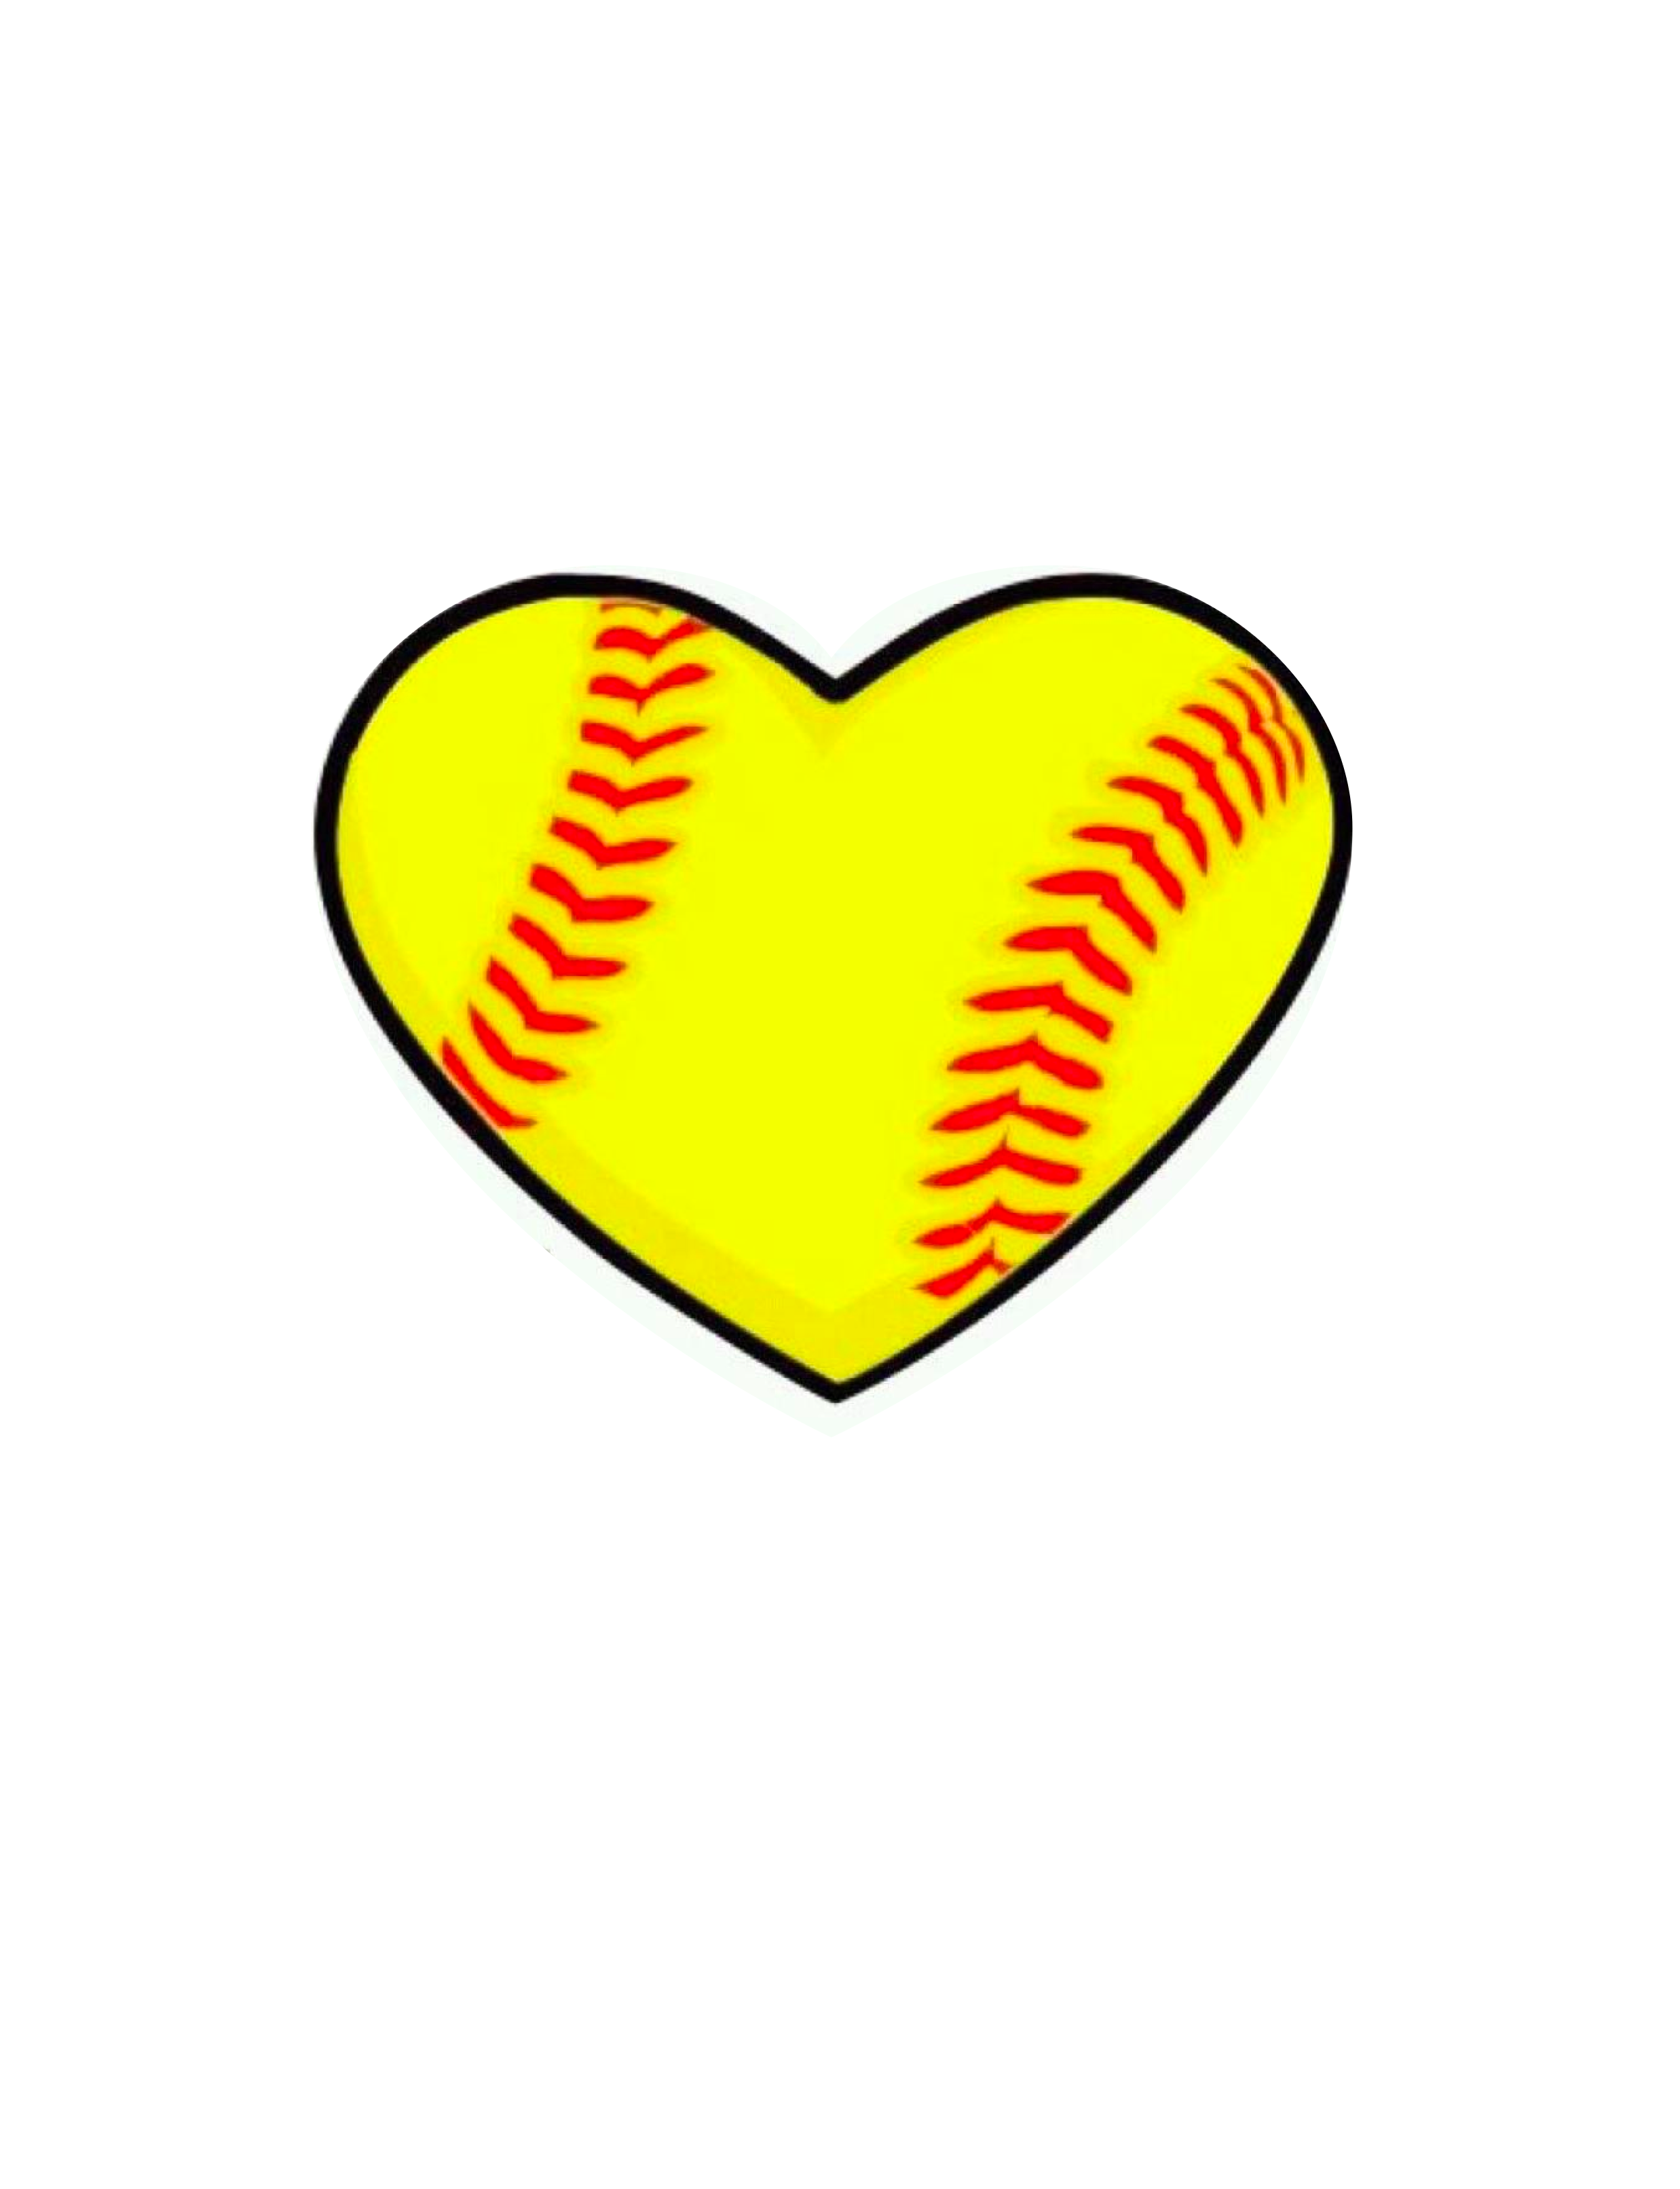 Clip Art Clipart Softball girls softball clipart kid shared by heather 04 13 2012